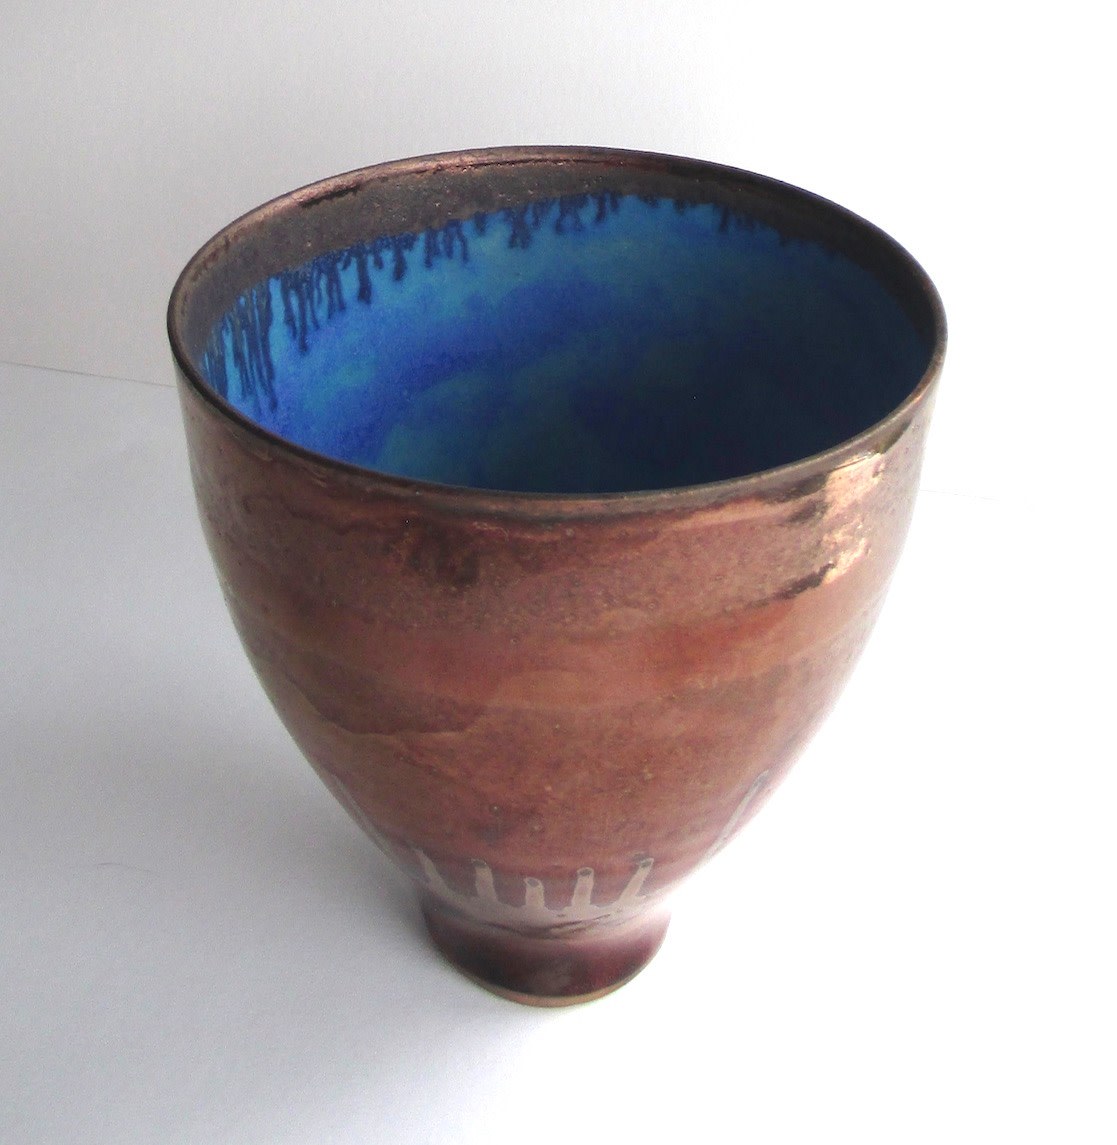 "<span class=""link fancybox-details-link""><a href=""/artists/44-sarah-perry/works/6976-sarah-perry-tall-copper-lustred-blue-pool-bowl-2020/"">View Detail Page</a></span><div class=""artist""><strong>Sarah Perry</strong></div> <div class=""title""><em>Tall Copper lustred Blue Pool Bowl</em>, 2020</div> <div class=""signed_and_dated"">labelled on the bottom</div> <div class=""medium"">Stoneware</div> <div class=""dimensions"">h. 15.5 x 15 cm </div><div class=""price"">£231.00</div><div class=""copyright_line"">Own Art: £ 23.10 x 10 Months, 0% APR</div>"